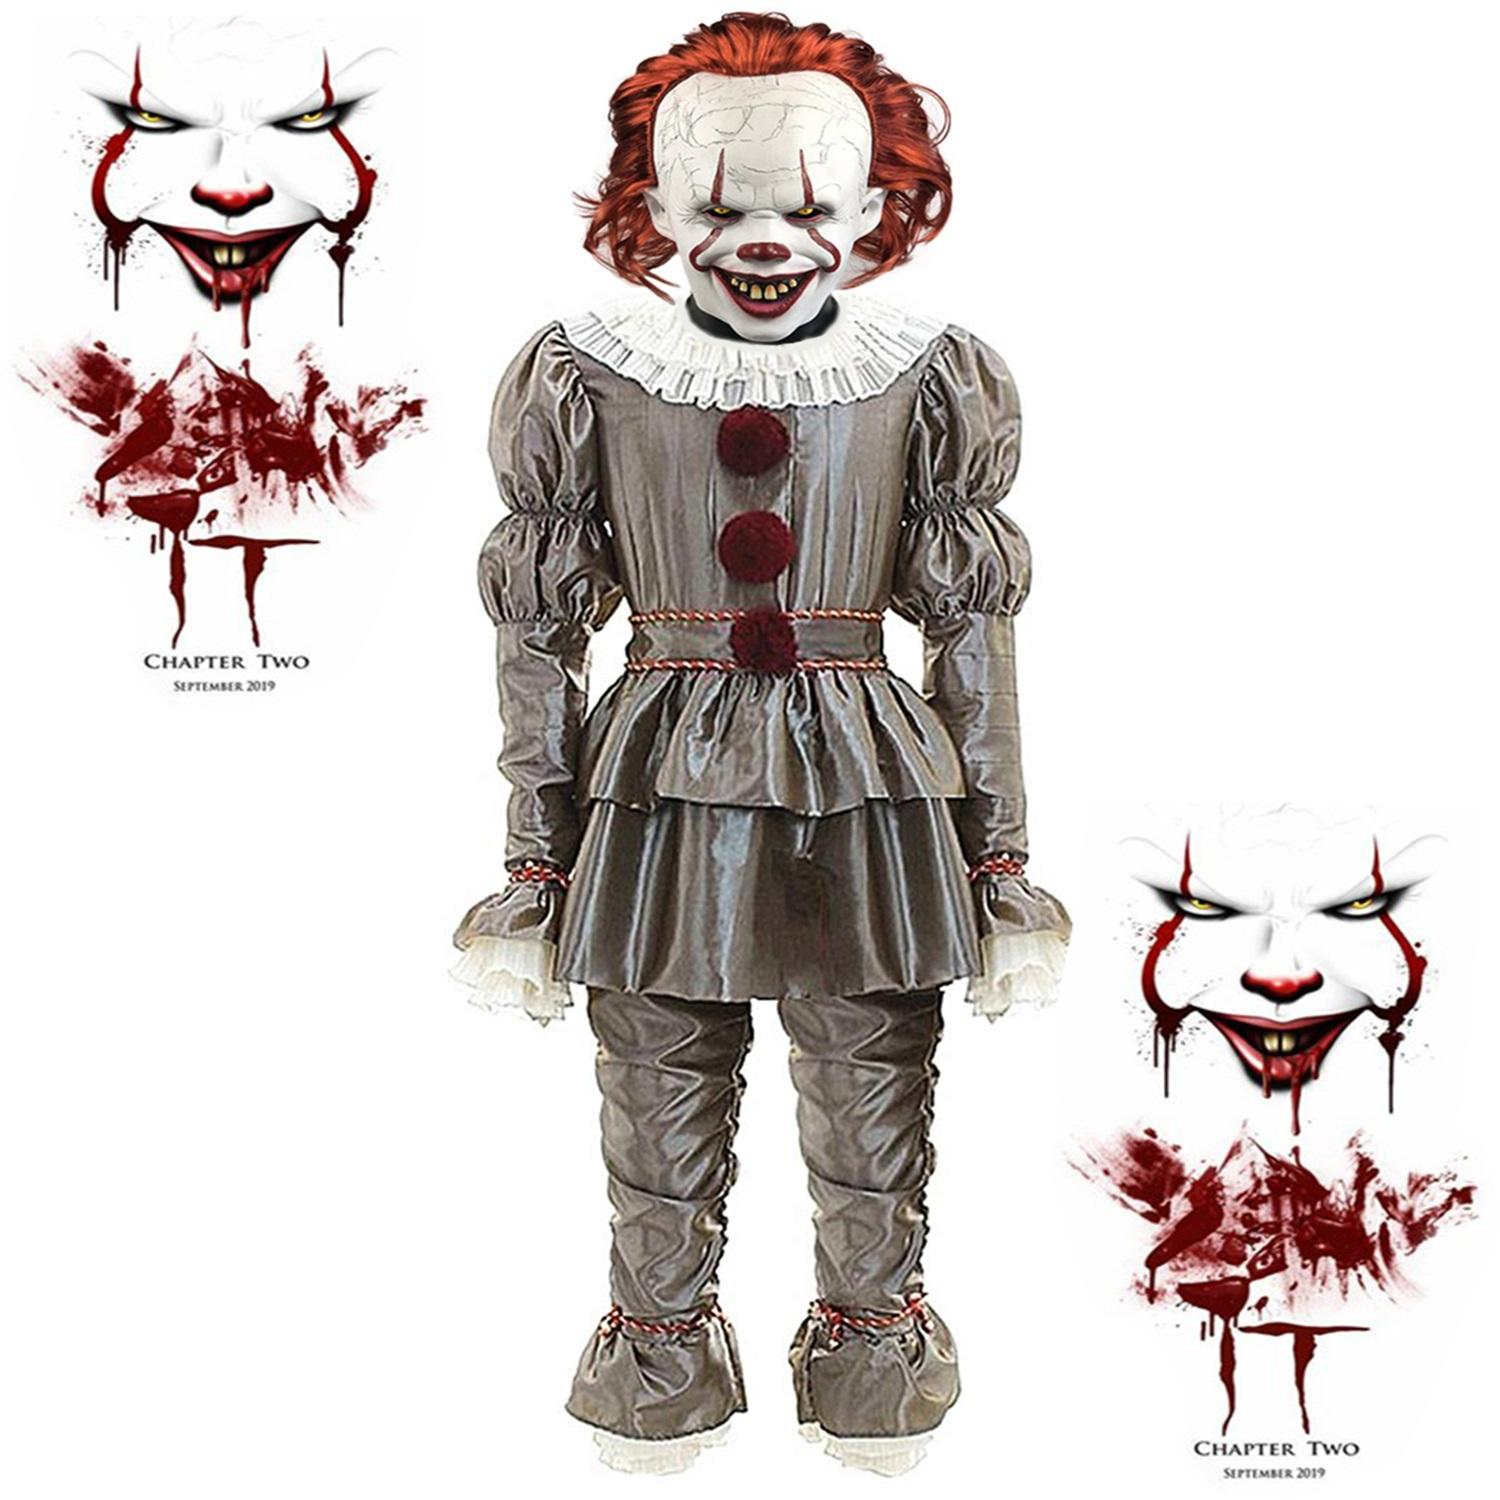 Men's IT Movie Chapter 2 Adult Pennywise Deluxe Costume Tattered Pennywise Costume for Adults Includes a Clown Suit Mask and Collar